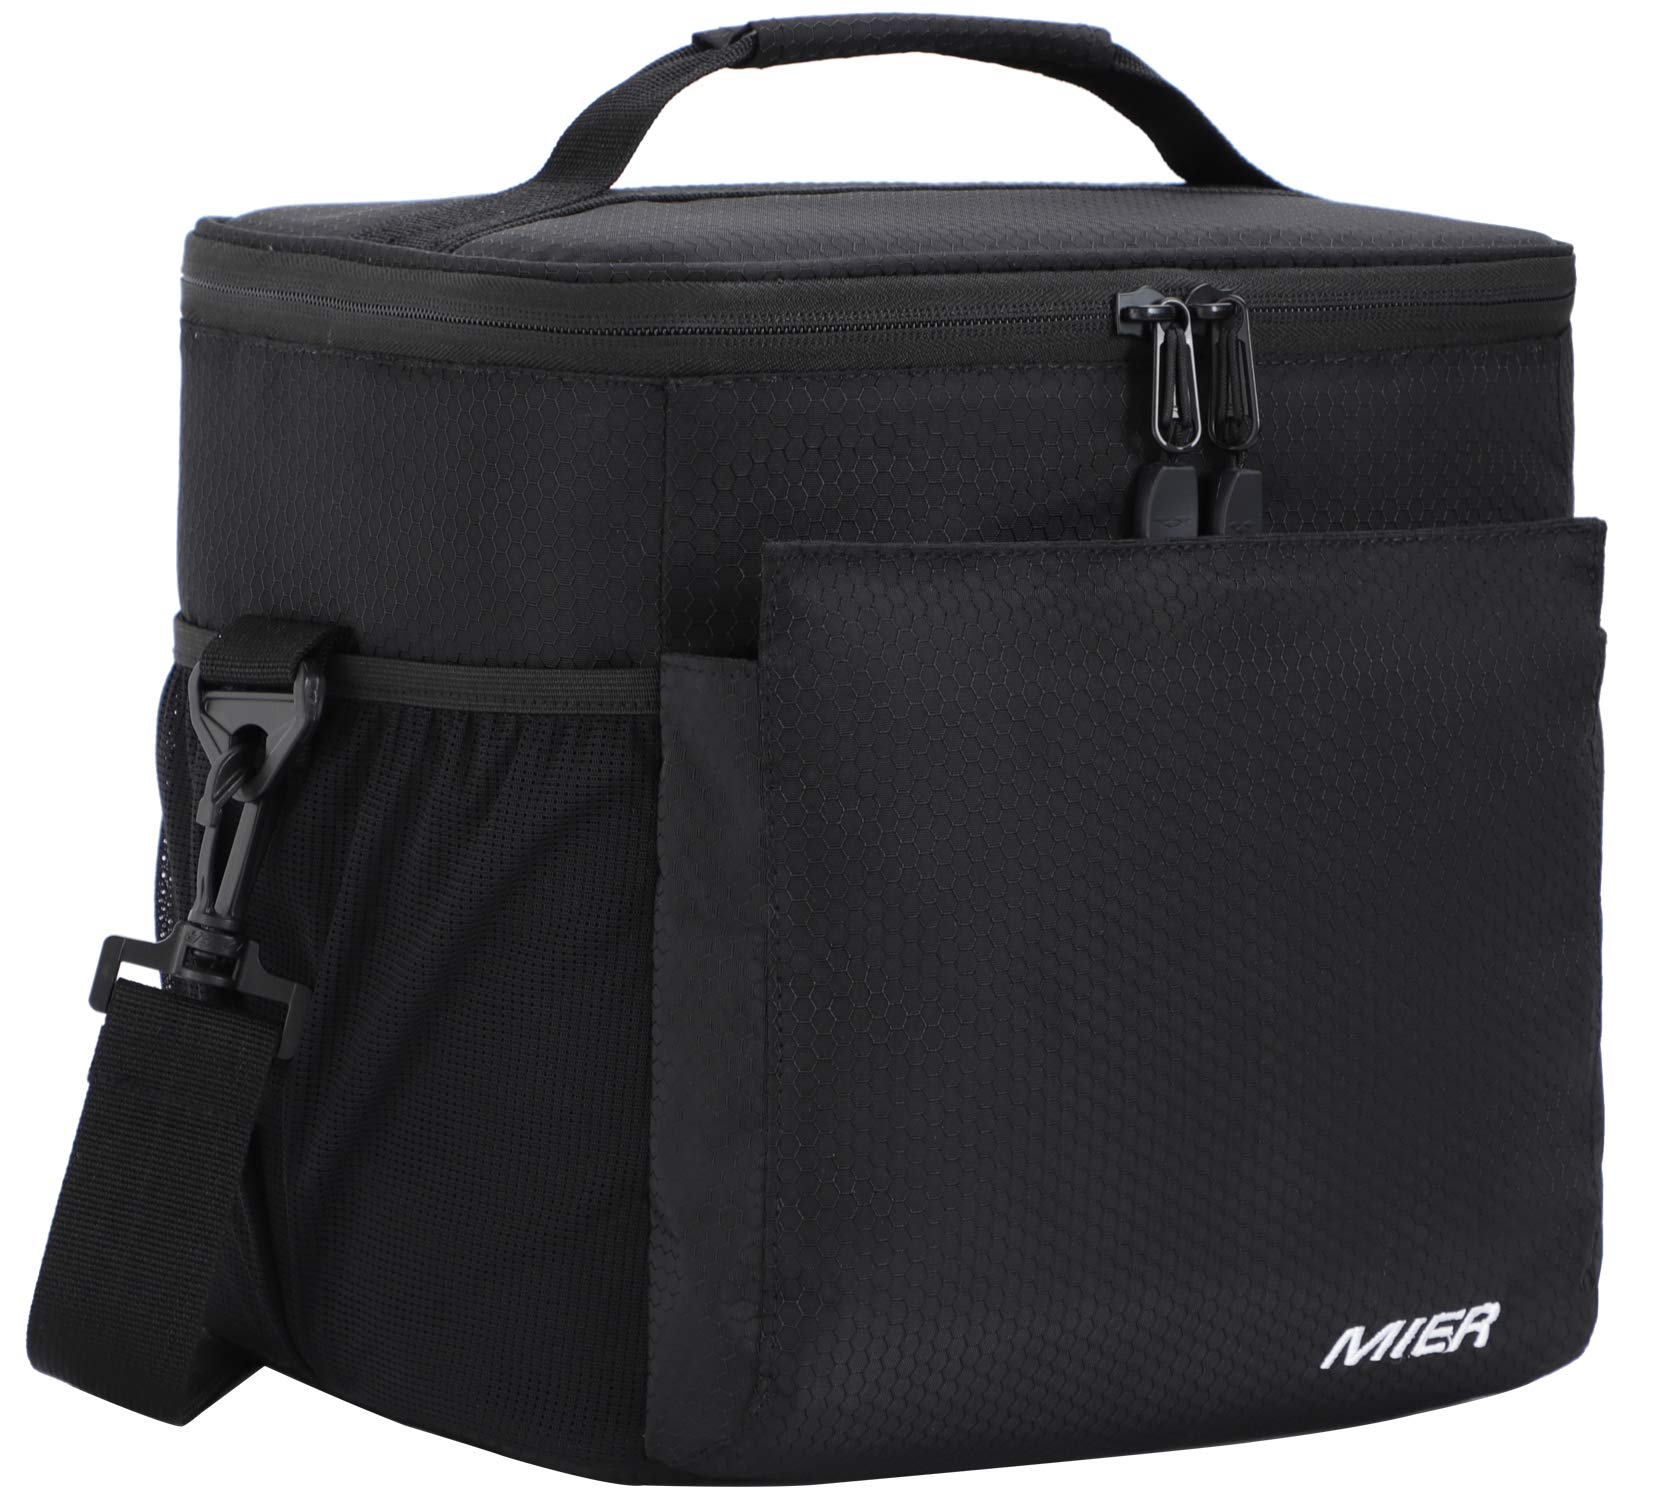 MIER Insulated Lunch Bag Men and Women Soft Cooler Lunch Box Tote with Shoulder Strap, Leakproof Liner, 24 Can, Pure Black by MIER